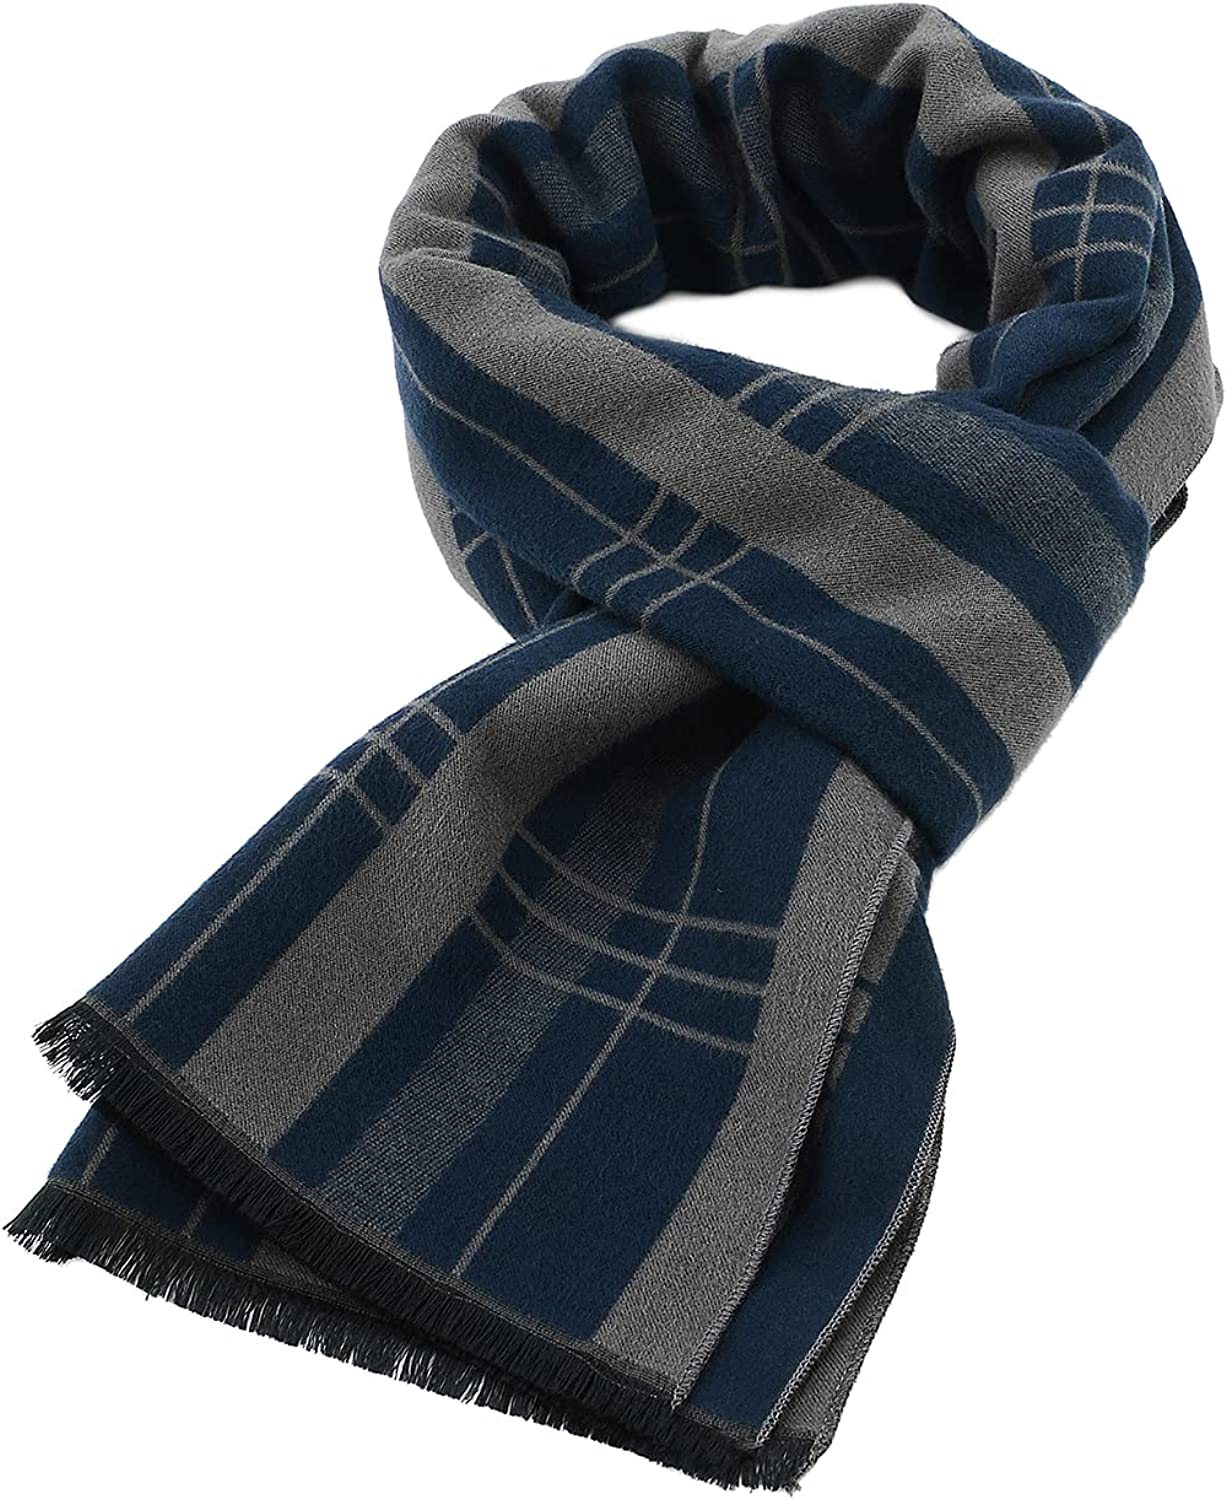 Zando Men's Cashmere Feel Scarf Business Casual Scarf for Men Extra Soft Warm Long Scarves Unisex